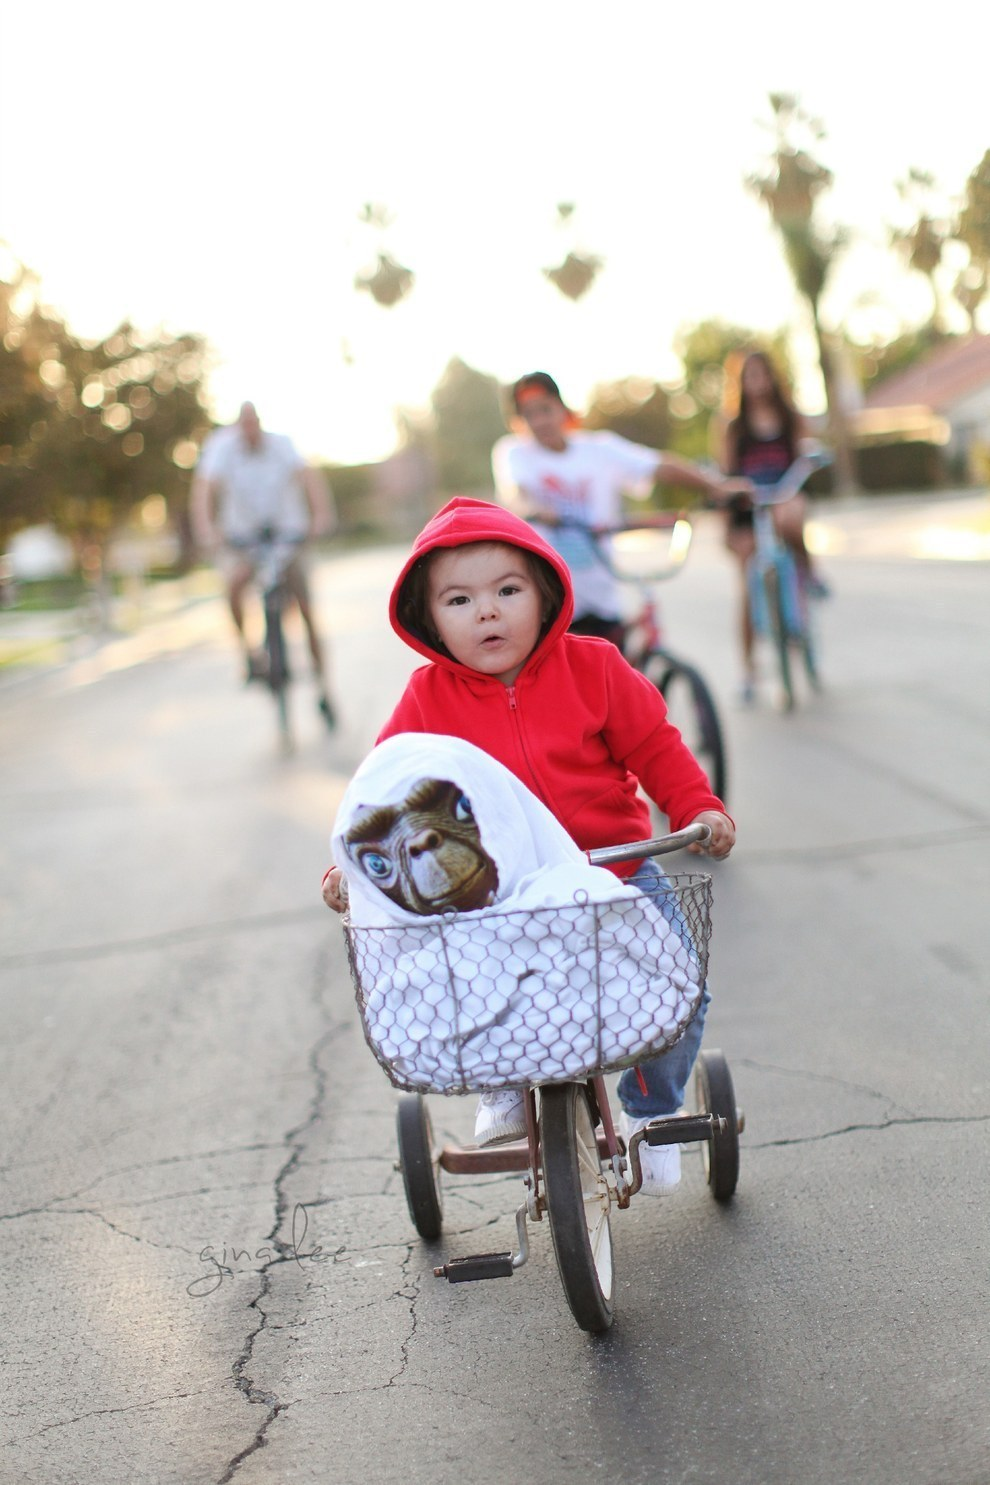 And, best of all, Elliott from E.T.!